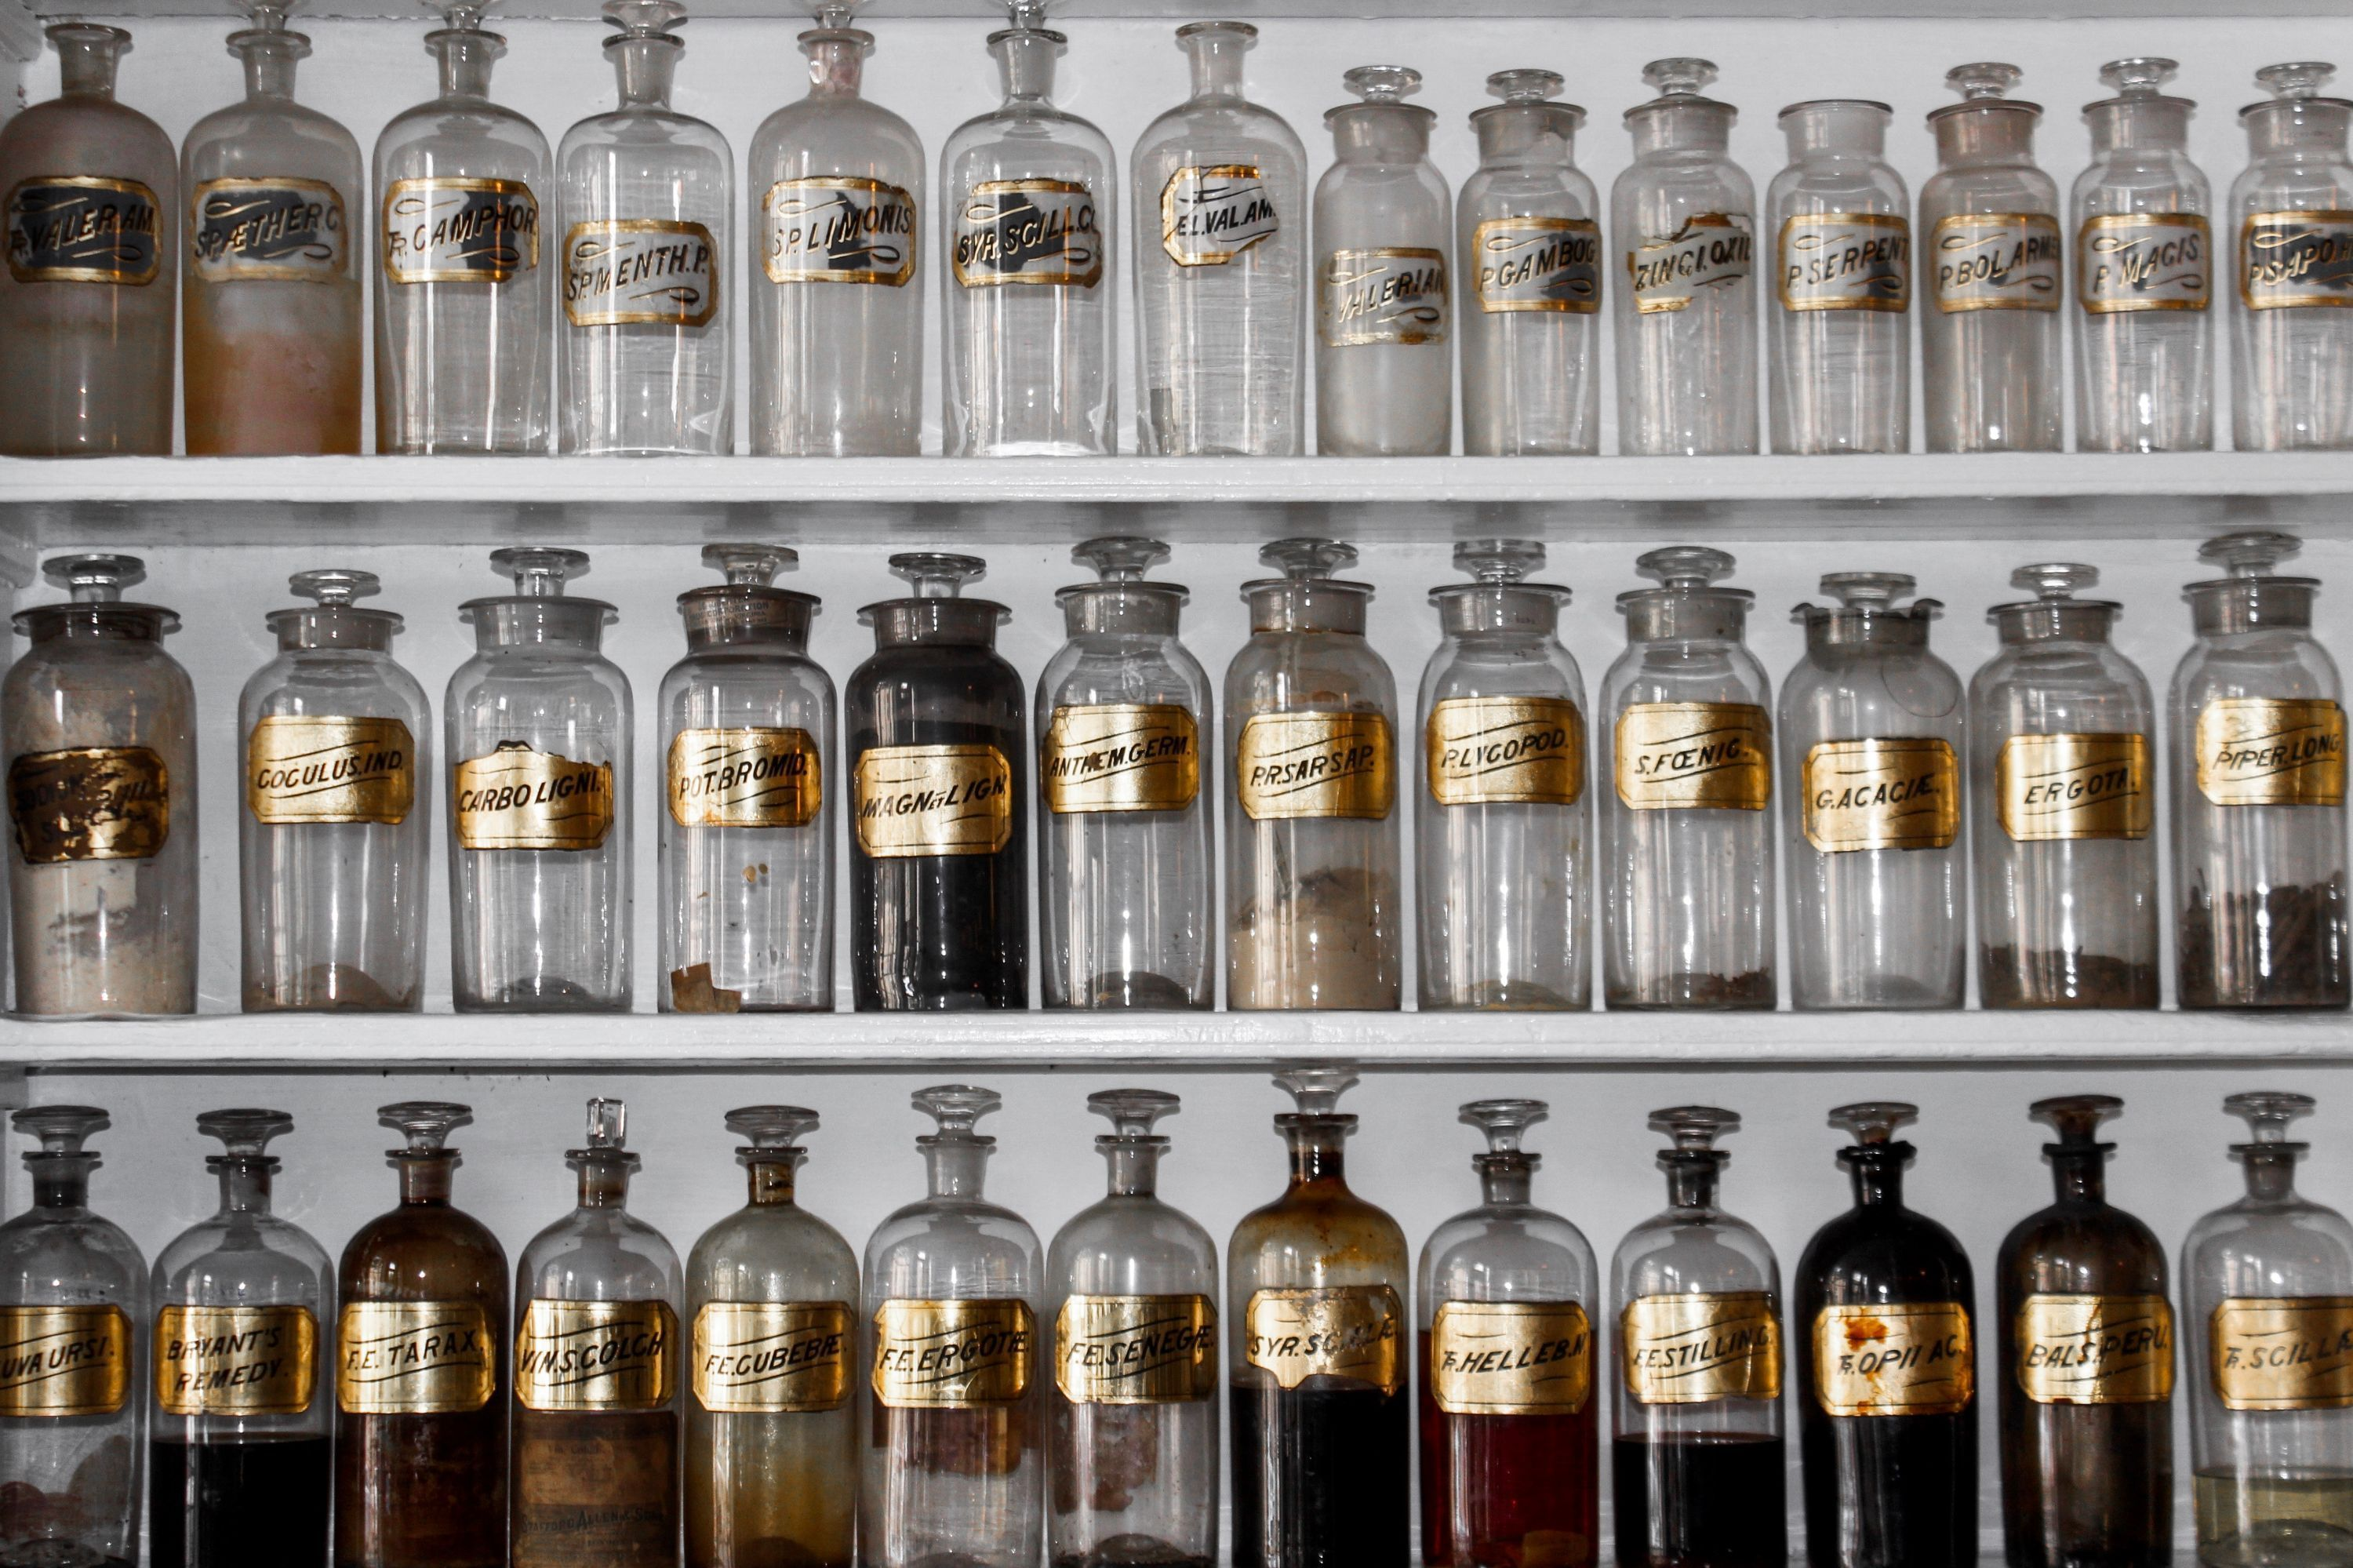 Shelves with bottles of fragrance ingredients in an apothecary  Photo by Matt Briney on Unsplash